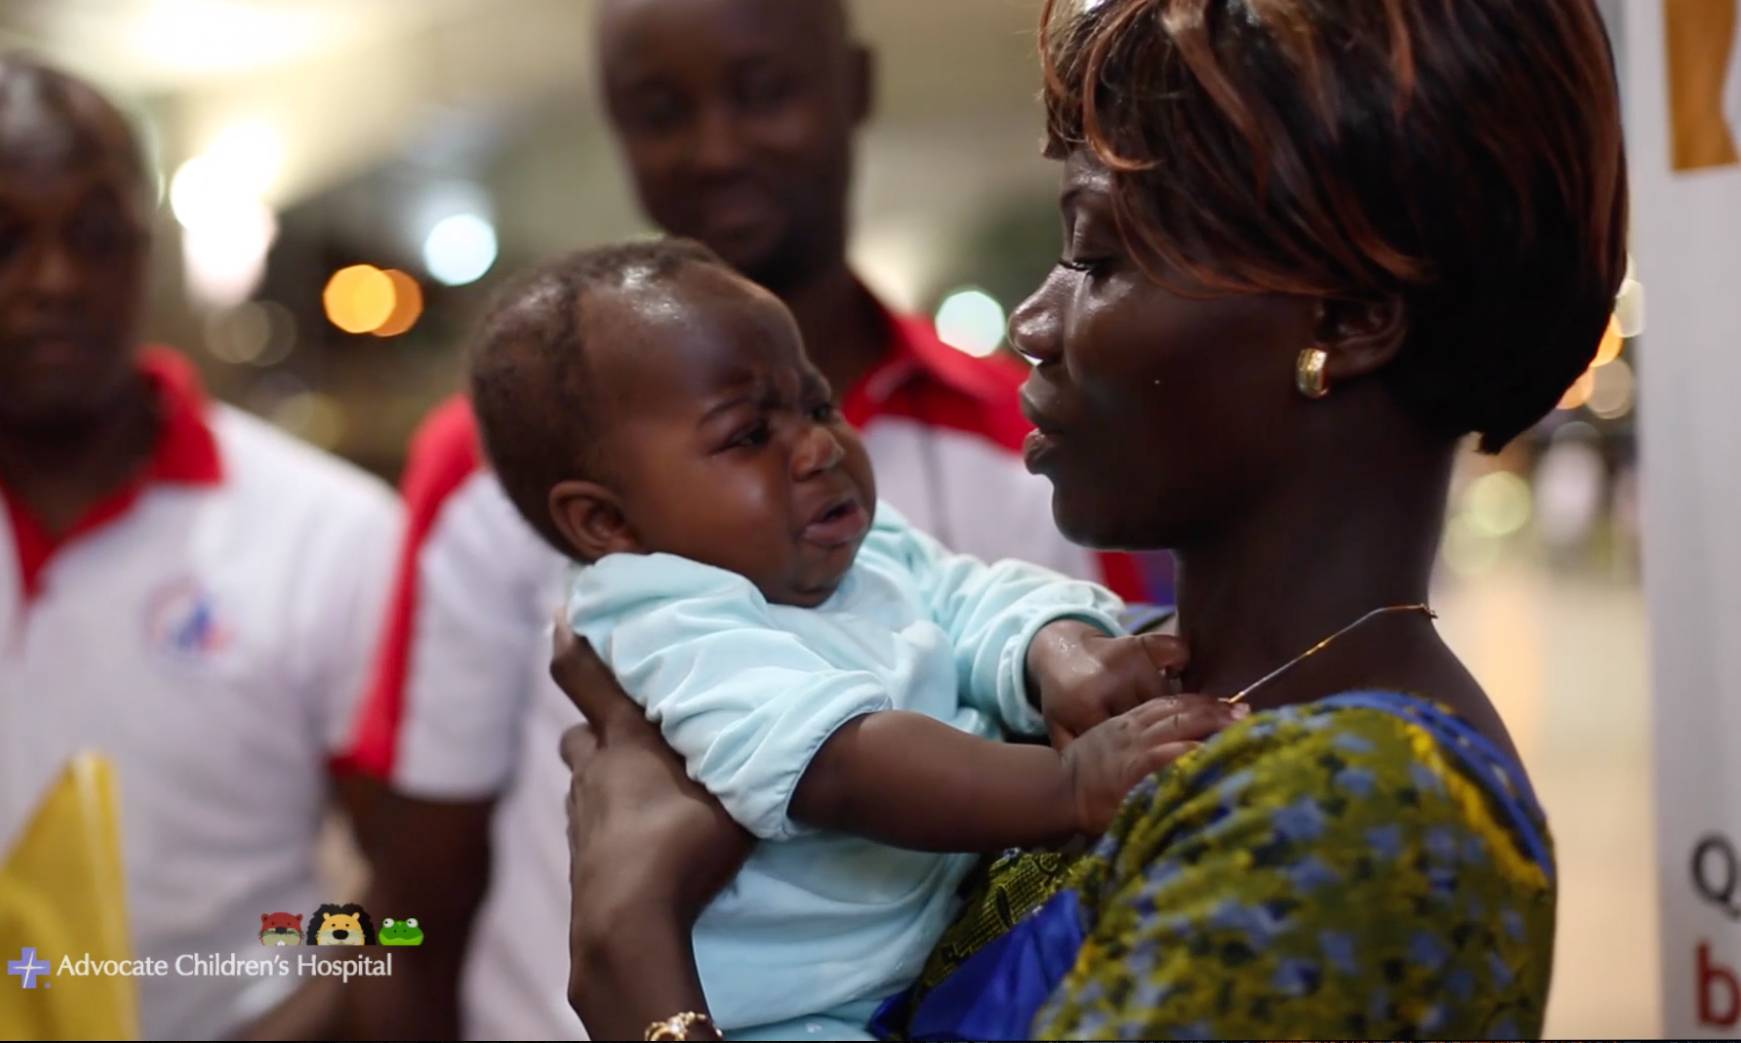 A little girl whose groundbreaking surgery brought many people together in 2017, Dominique was a healthy and happy little girl back home in the West African nation of Ivory Coast when she apparently contracted malaria and died a few days later last year.